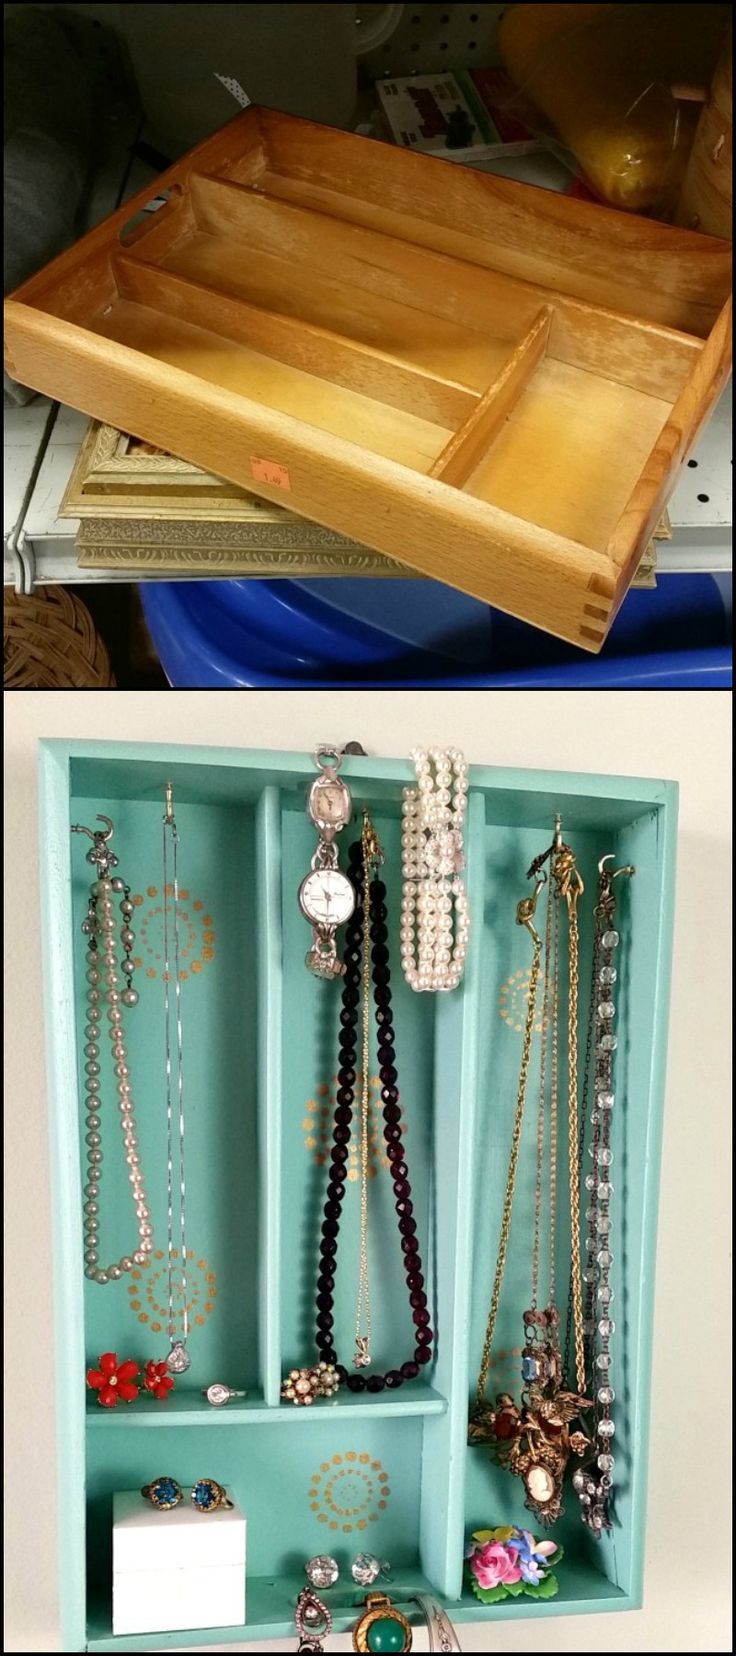 Need to organize your jewelry and accessories? Here's a nice, easy repurposing project for you! Search your favorite local thrift store for an old wooden cutlery or silverware tray as it makes a great jewelry and accessory holder! You'll be amazed at how many pieces of jewelry even a small silverware tray can hold. The little 'shelves' the dividers make can be used for storing small items.